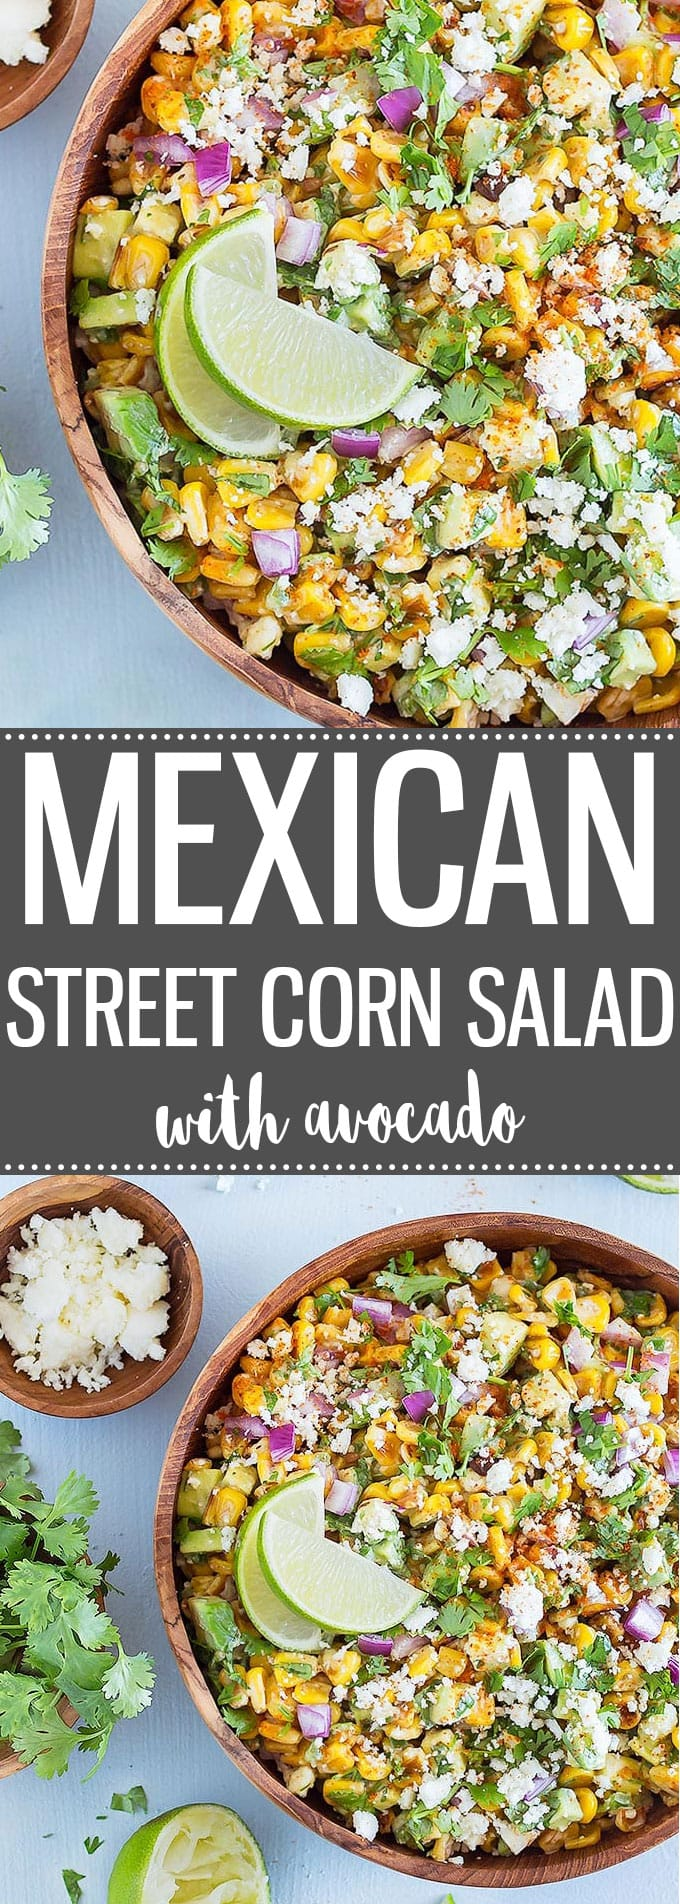 Mexican Street Corn Salad with Avocado is always a crowd-pleaser! It's fast and easy to prepare and has a tasty balance of fresh flavors and textures. Serve it cold, warm, or at room temperature. #mexican #mexicanfood #salad #streetcorn #easyrecipes #corn #entertaining #potluck